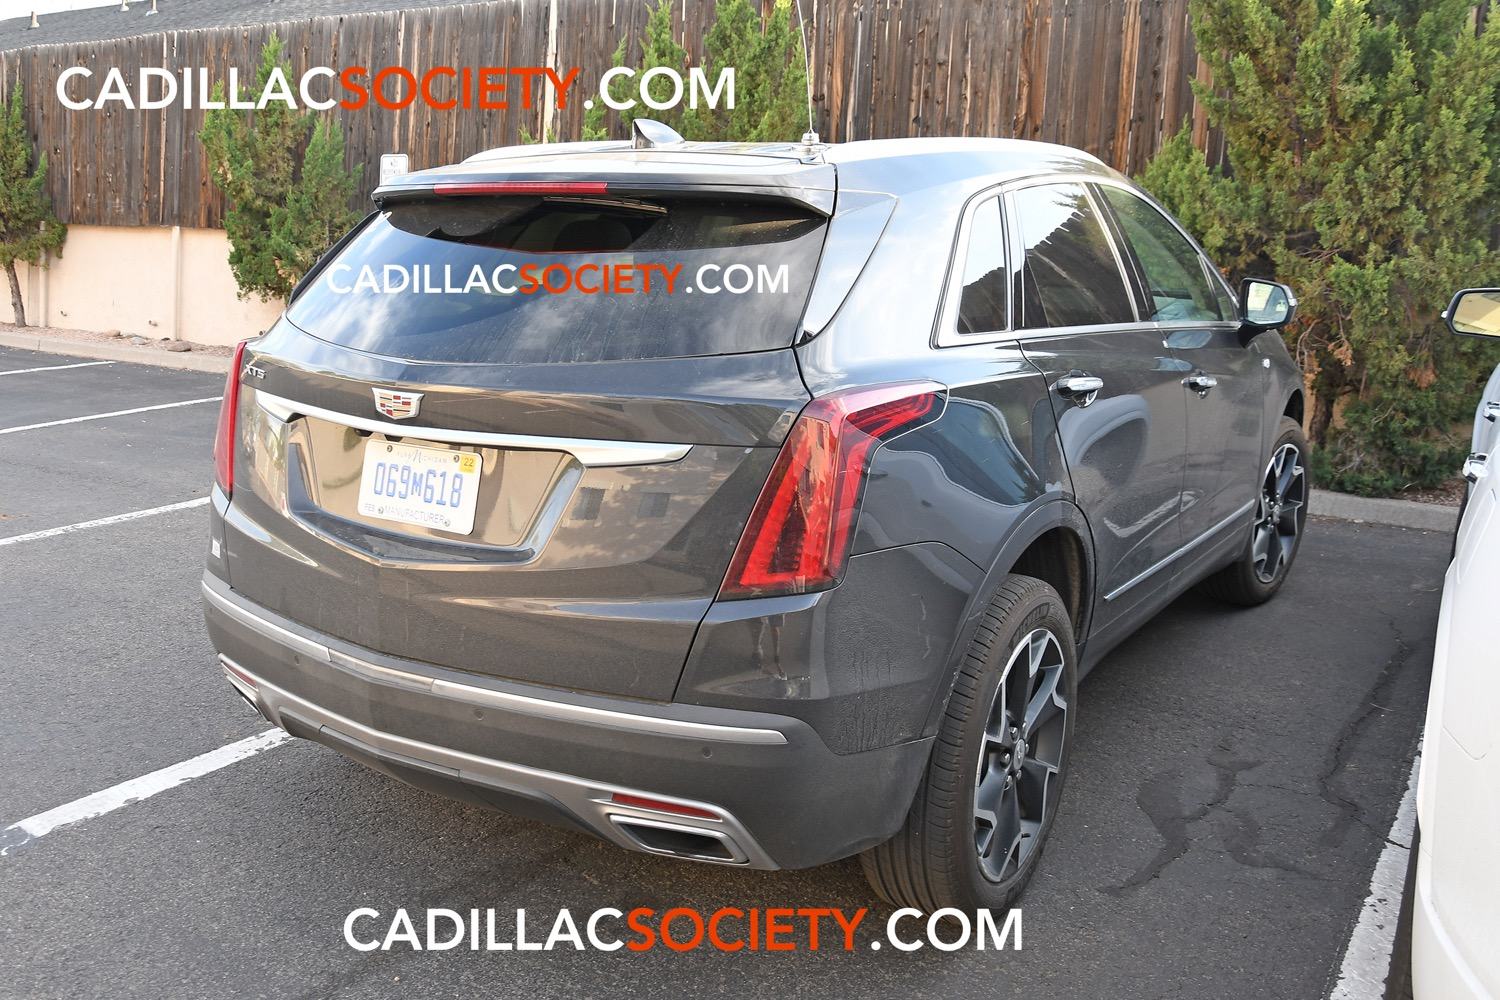 2020 Cadillac XT5: Refreshed, Changes, Release >> 2020 Cadillac Xt5 Refresh To Add Turbo Charged 2 0l Engine